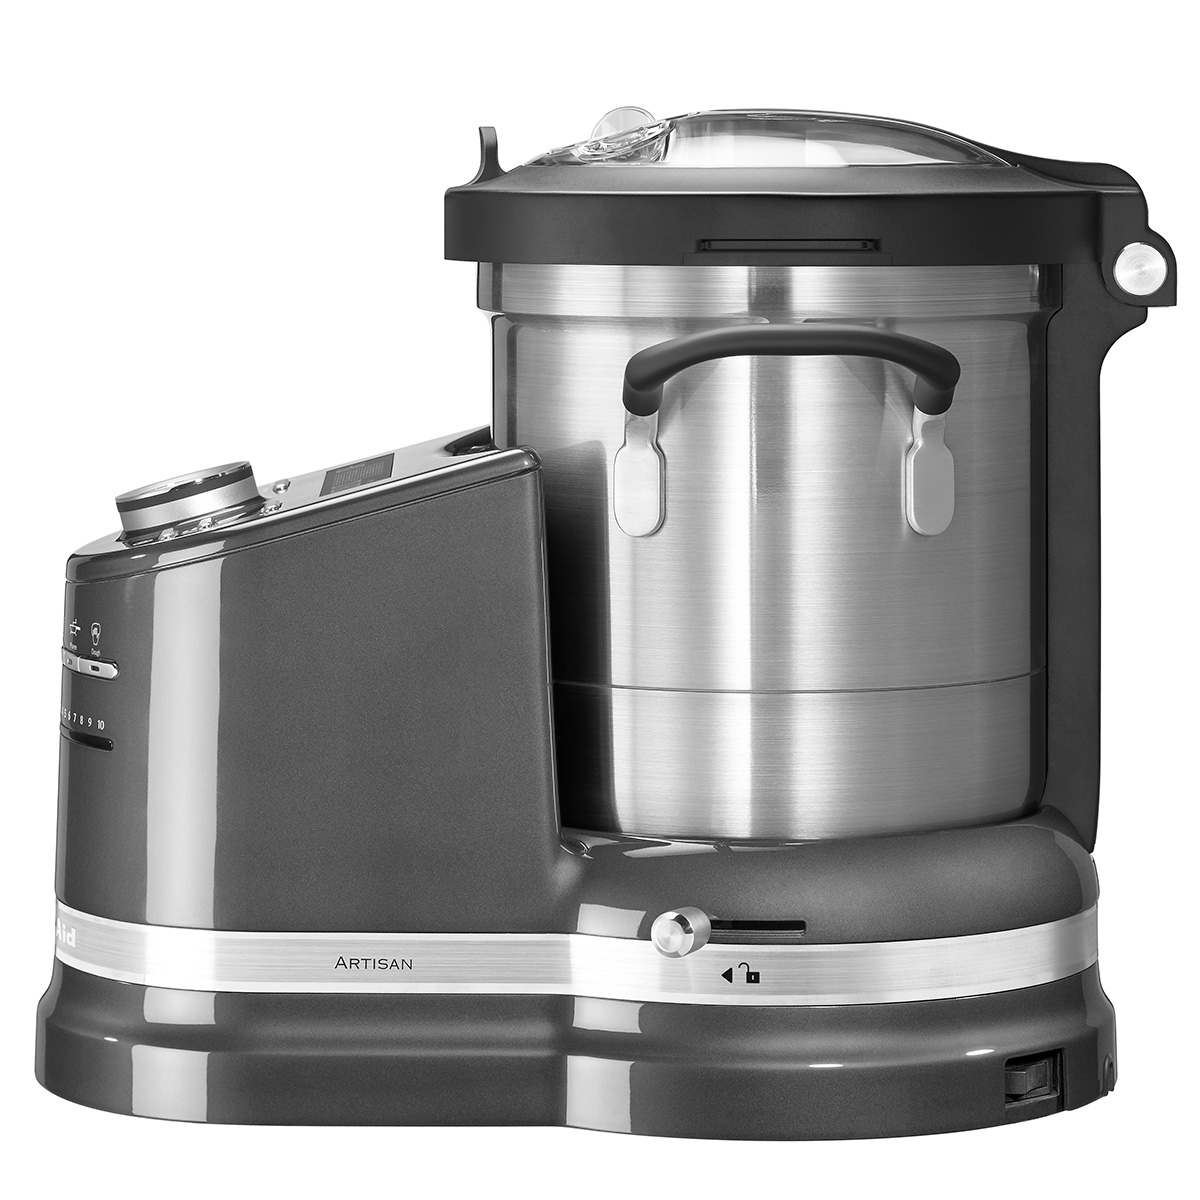 KitchenAid Cook Processor - Artisan